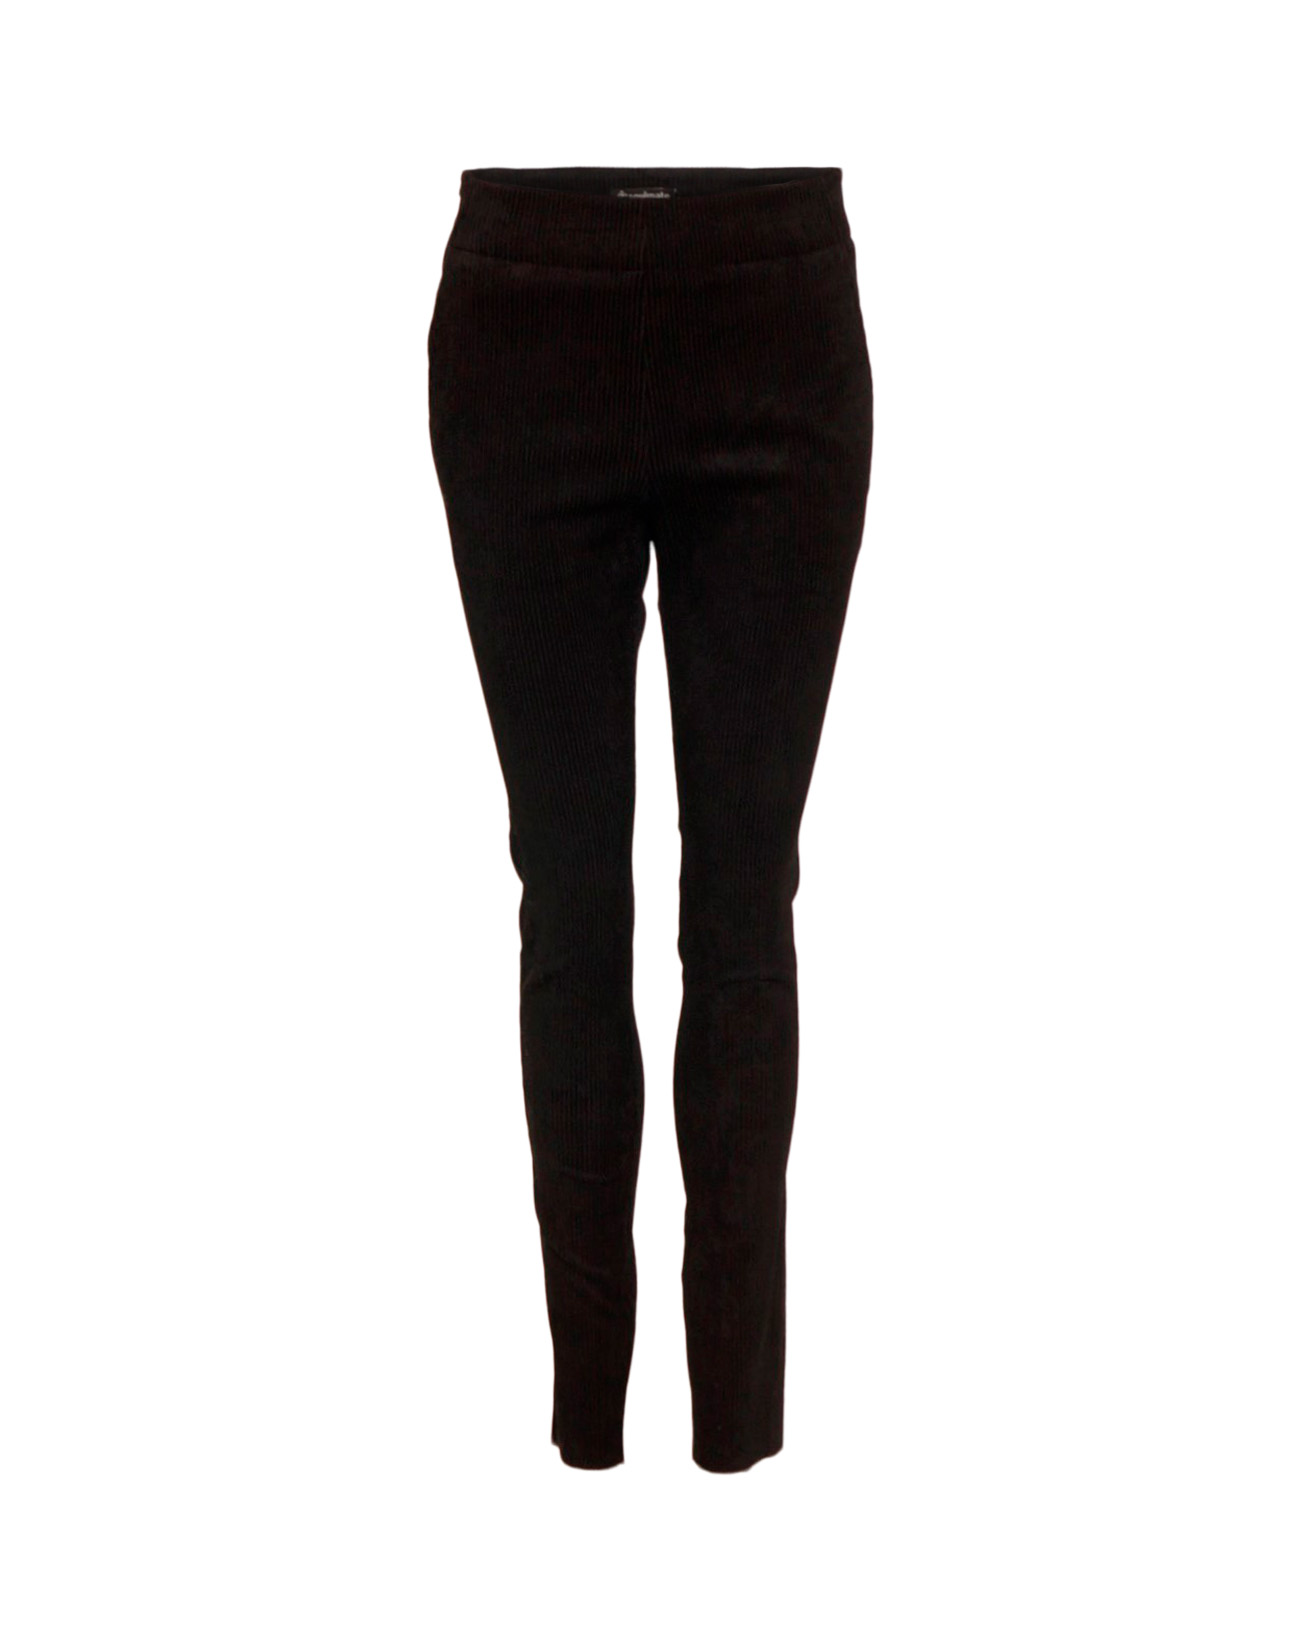 Gareth 1 Black Legging - FØR 599.95